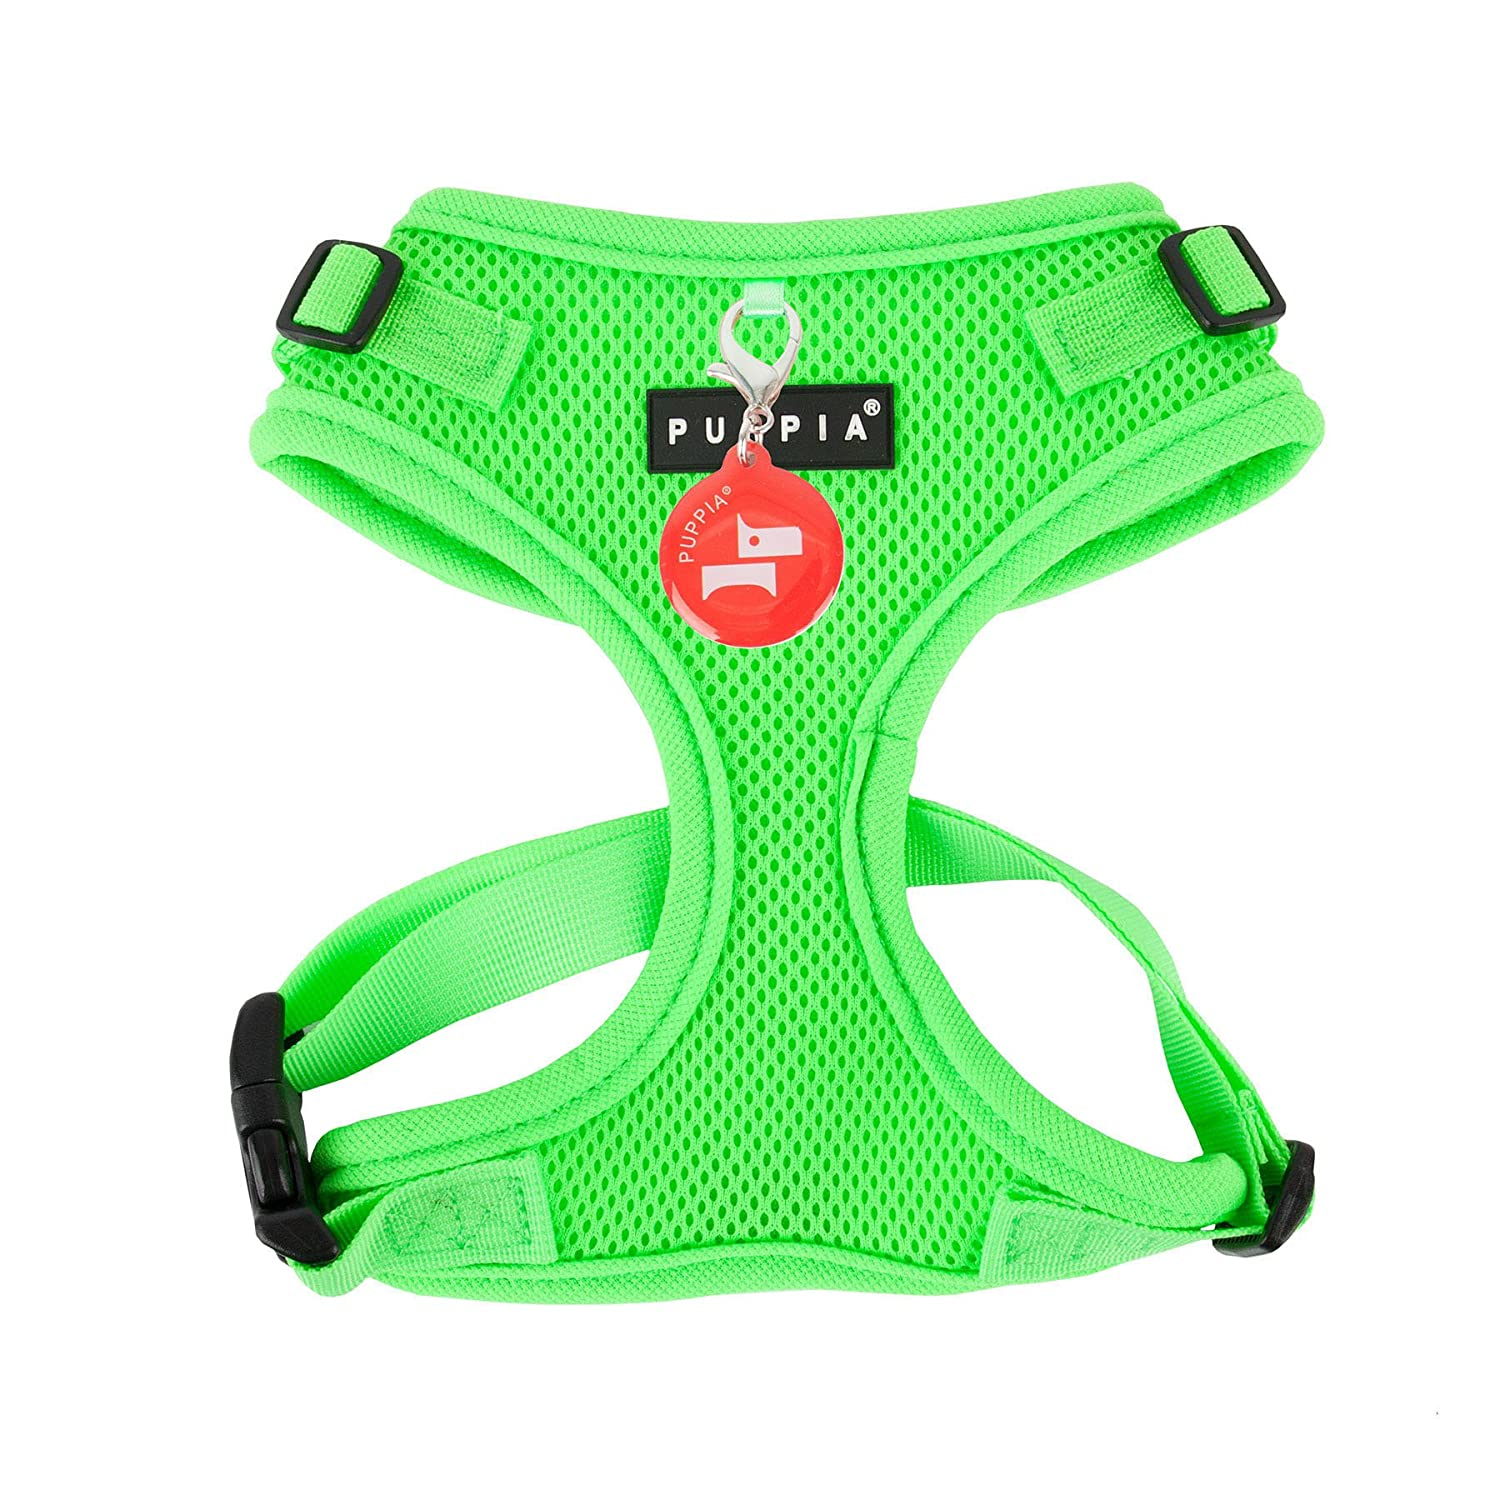 Puppia Authentic Neon Soft Harness II, Large, Green